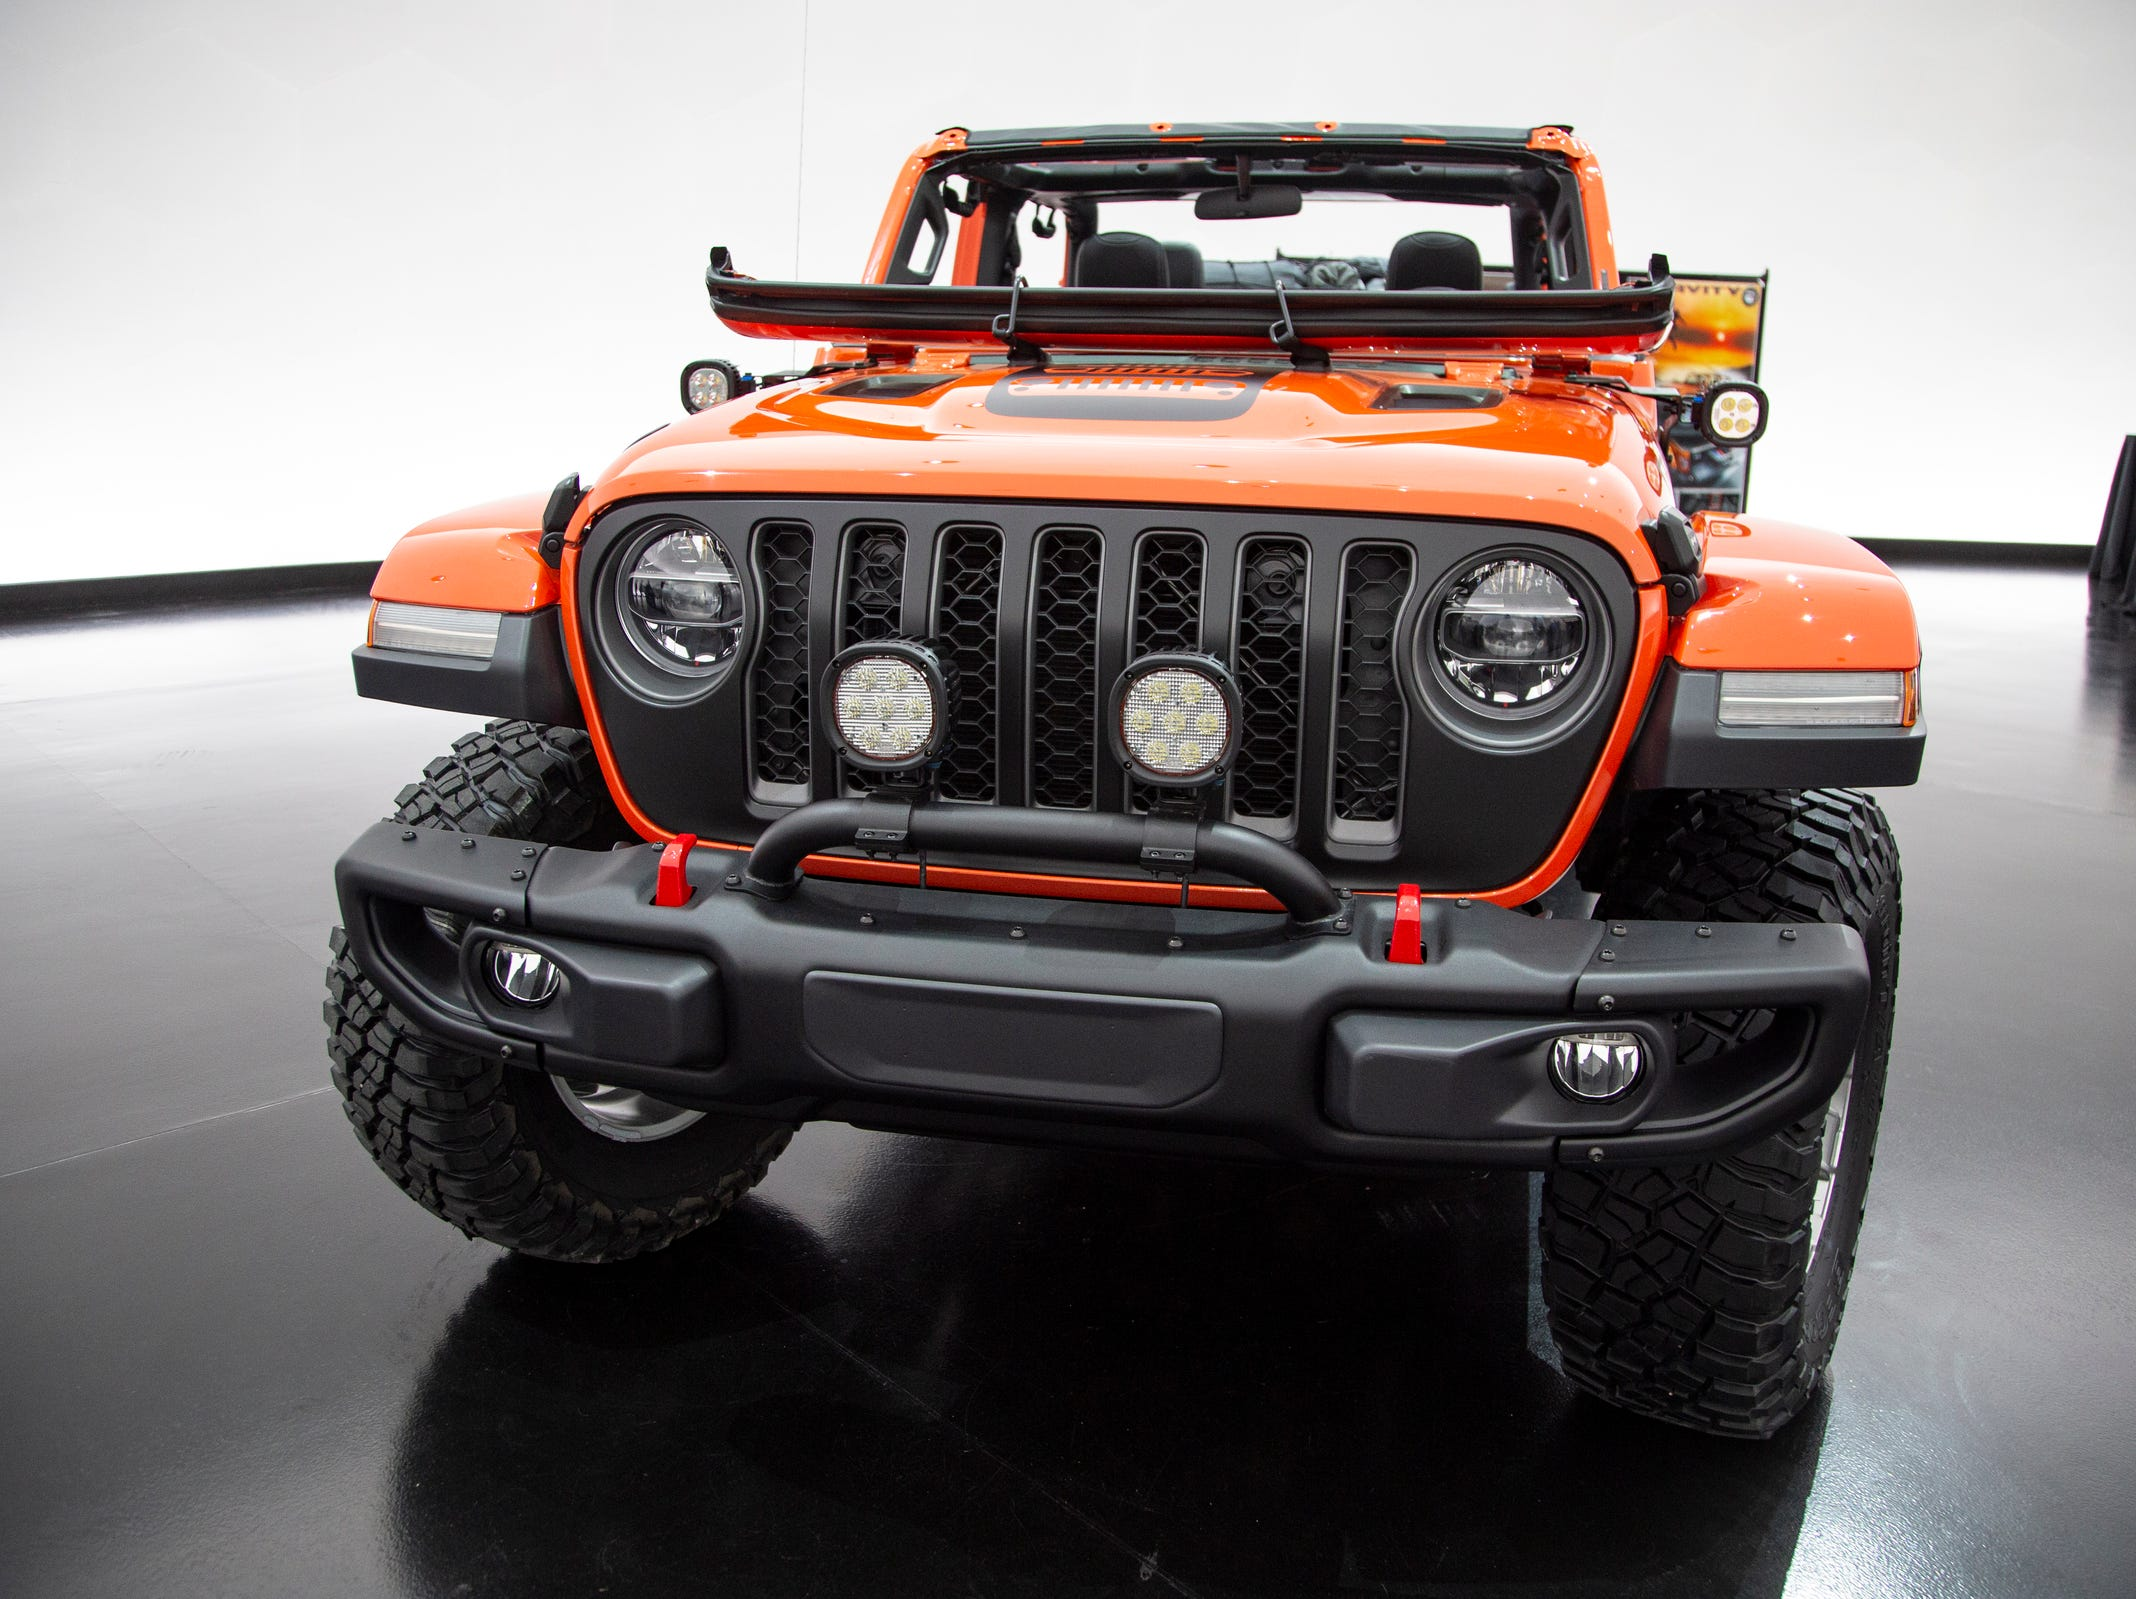 Jeep and Mopar brands debut six concept vehicles including the Jeep Gladiator Gravity Friday, April 5, 2019 at the Fiat Chrysler Tech Center and headquarters for the 53rd annual Moab Easter Jeep Safari. The Jeep Gladiator Gravity is a rock-climber-themed concept colored in Punk'N Metallic Orange. Steel tube doors allow for a more open air concept. The bed offers the Mopar/Decked truck bed storage system with dual sliding drawers for lockable cargo.